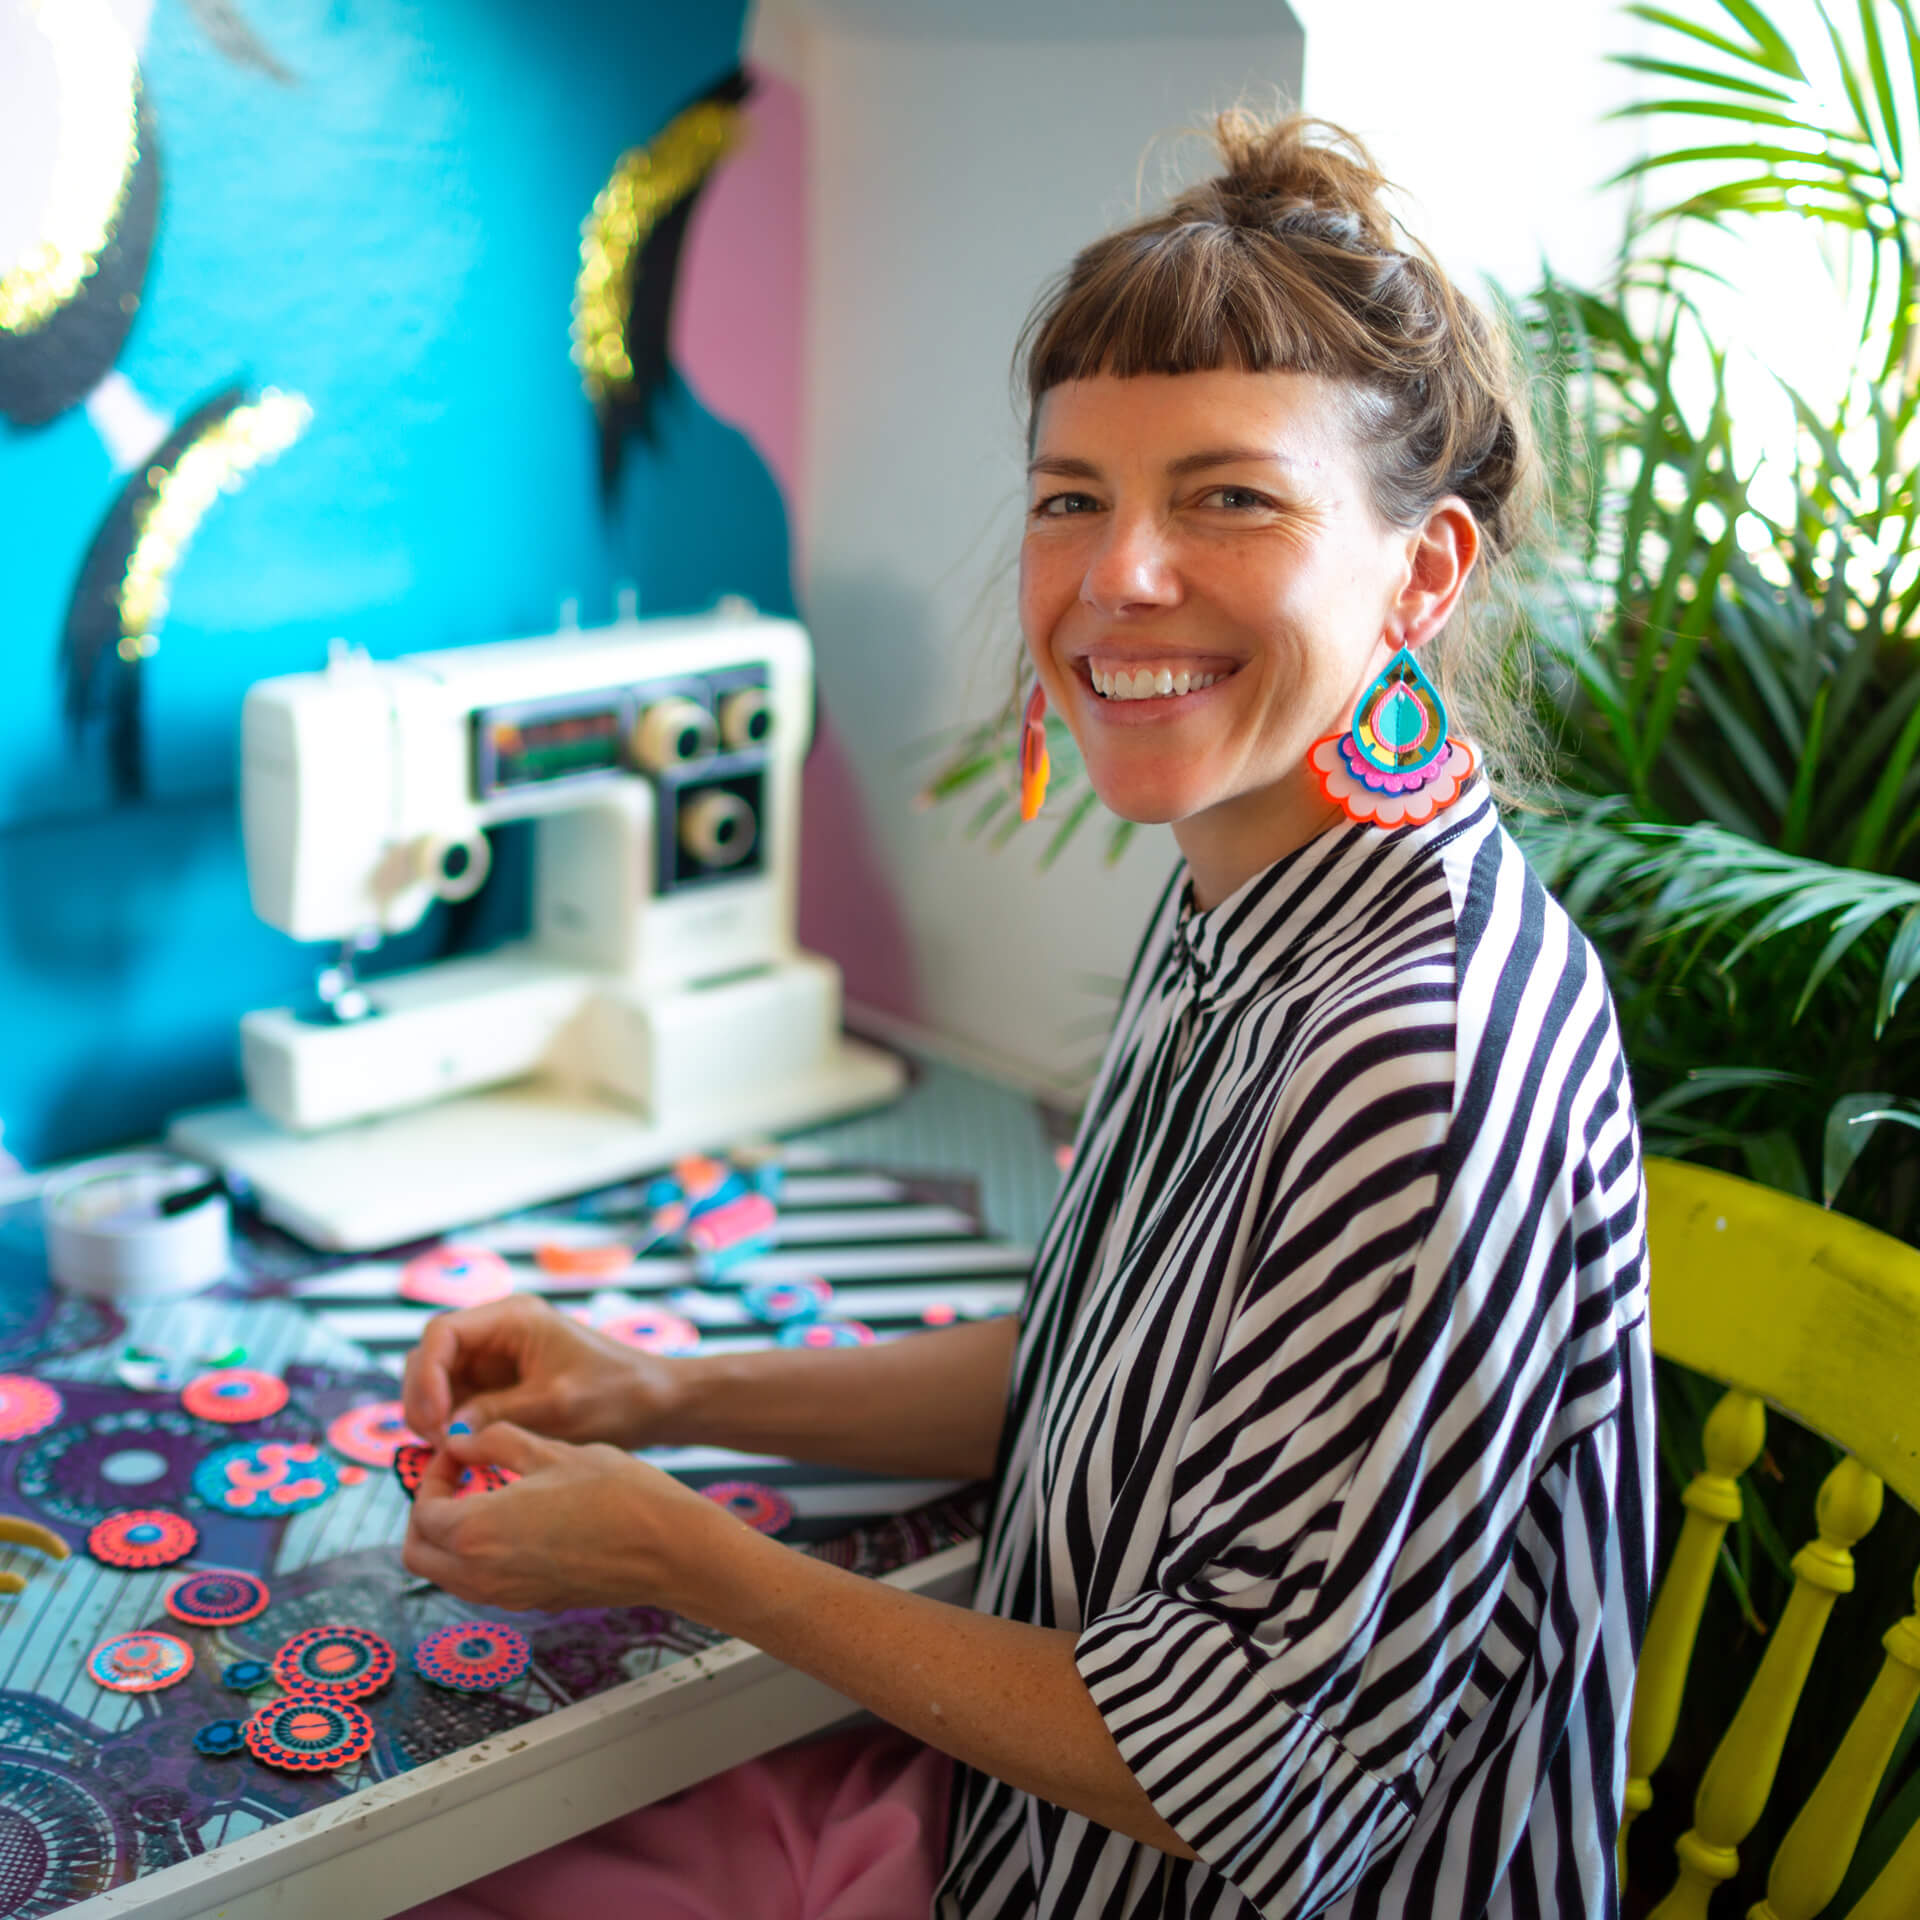 designer bec sitting at her desk with her sewing machine